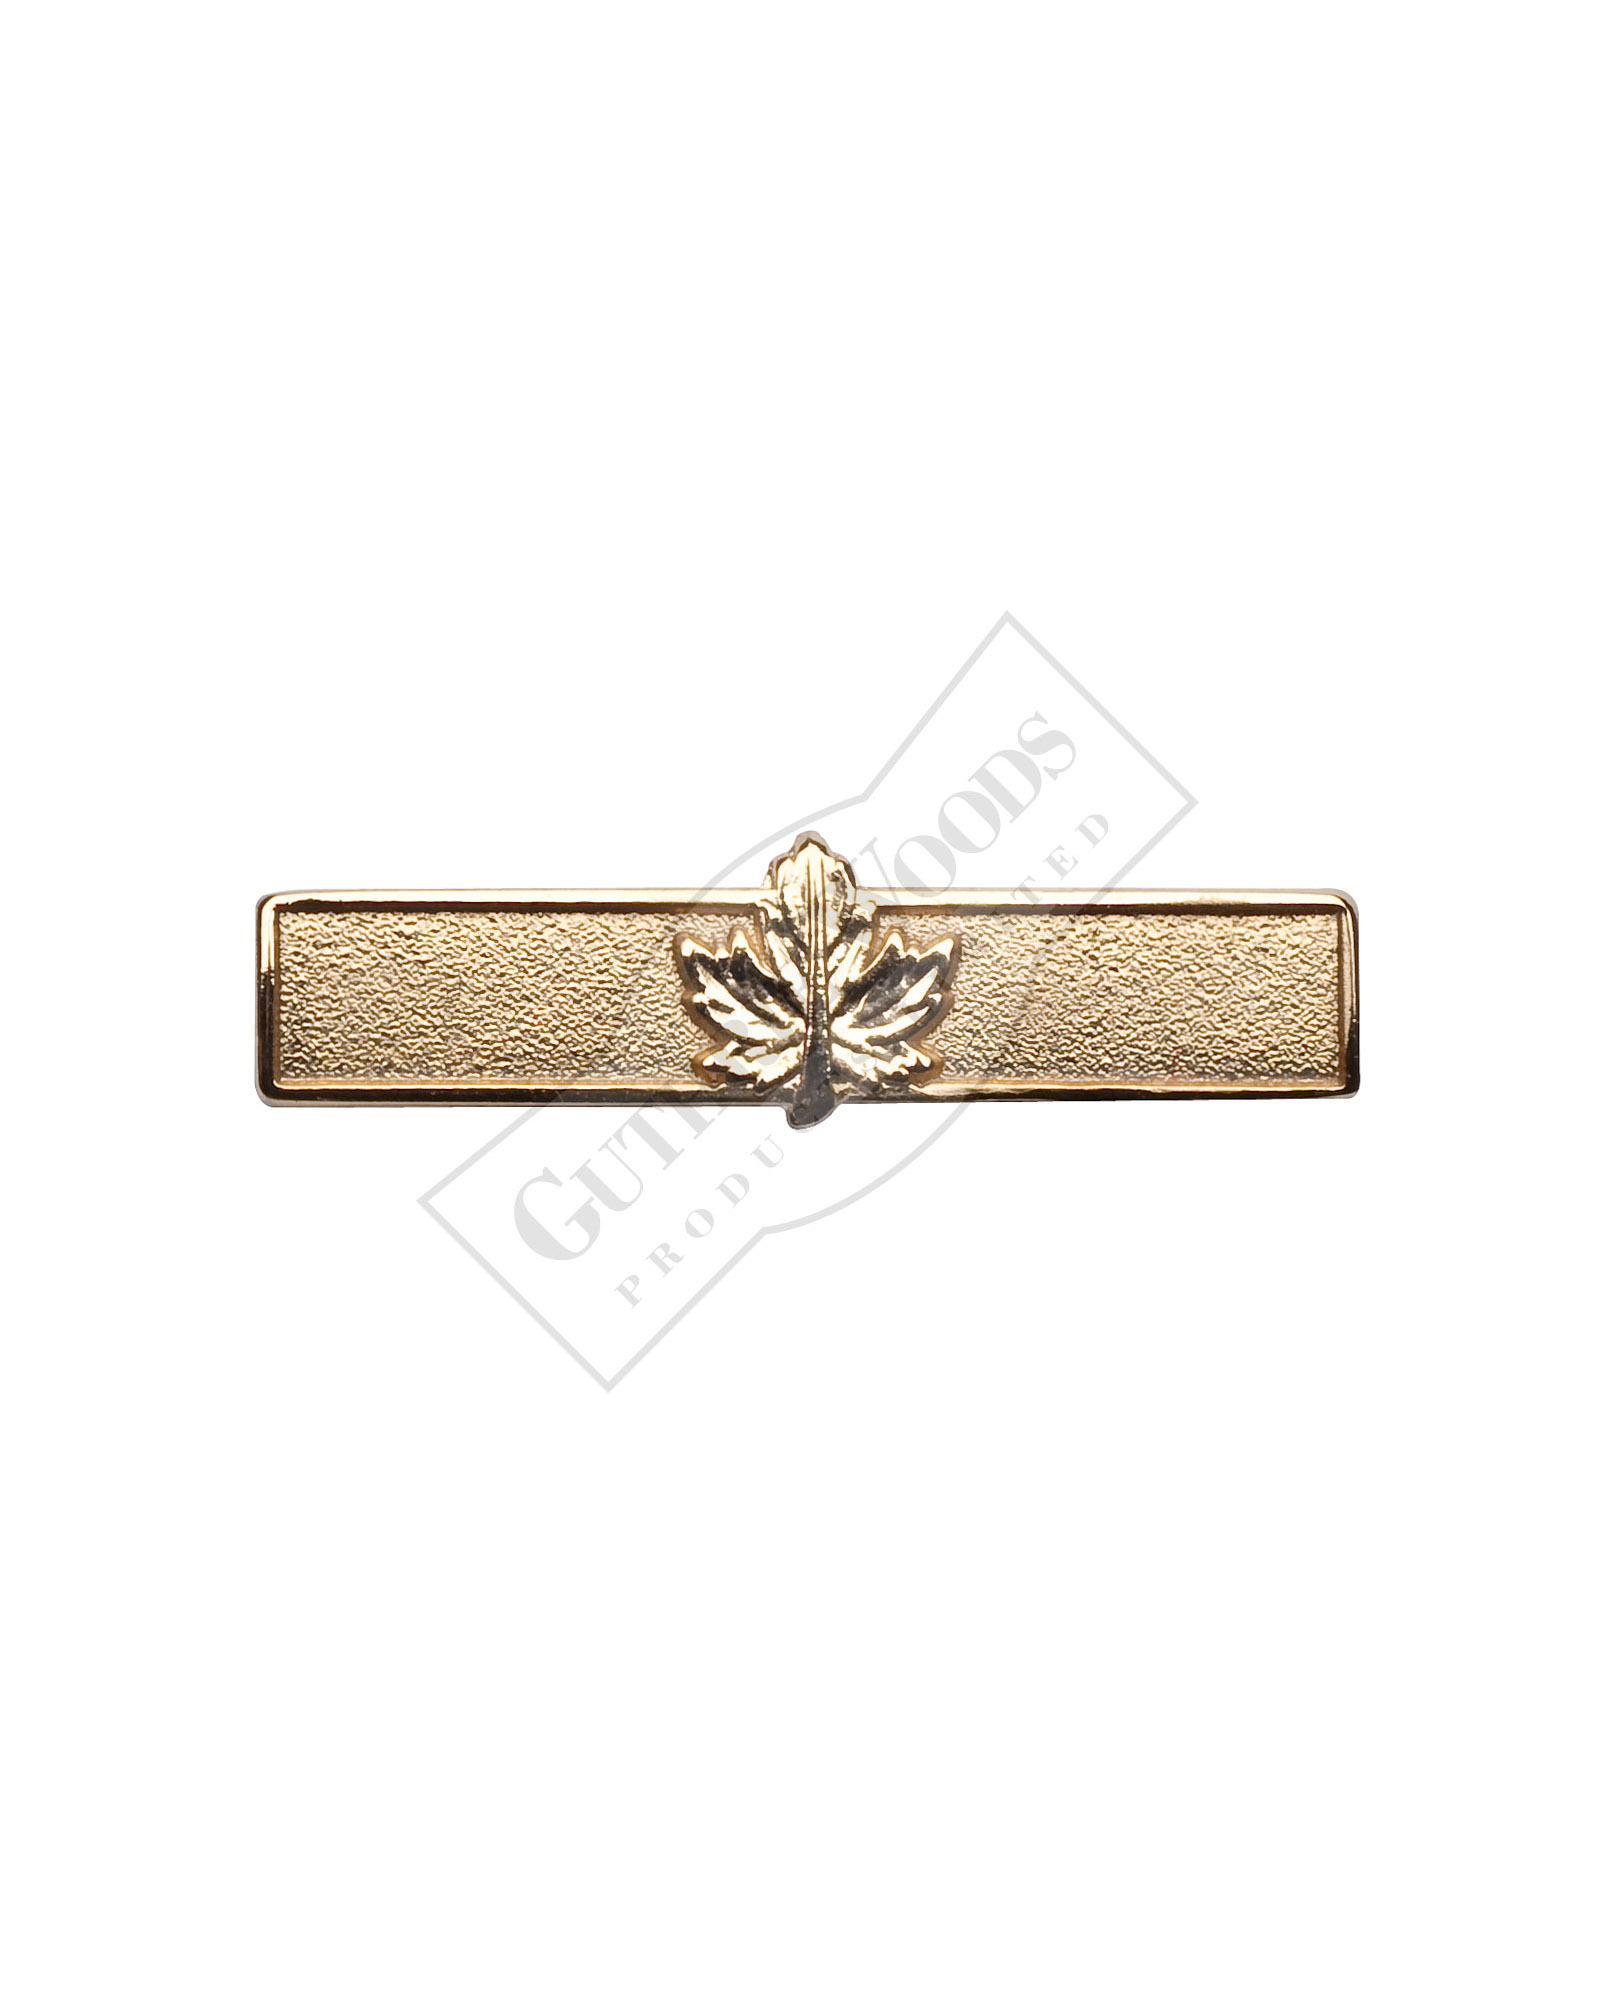 Rotation Bar - Gold - Single Leaf #245-G